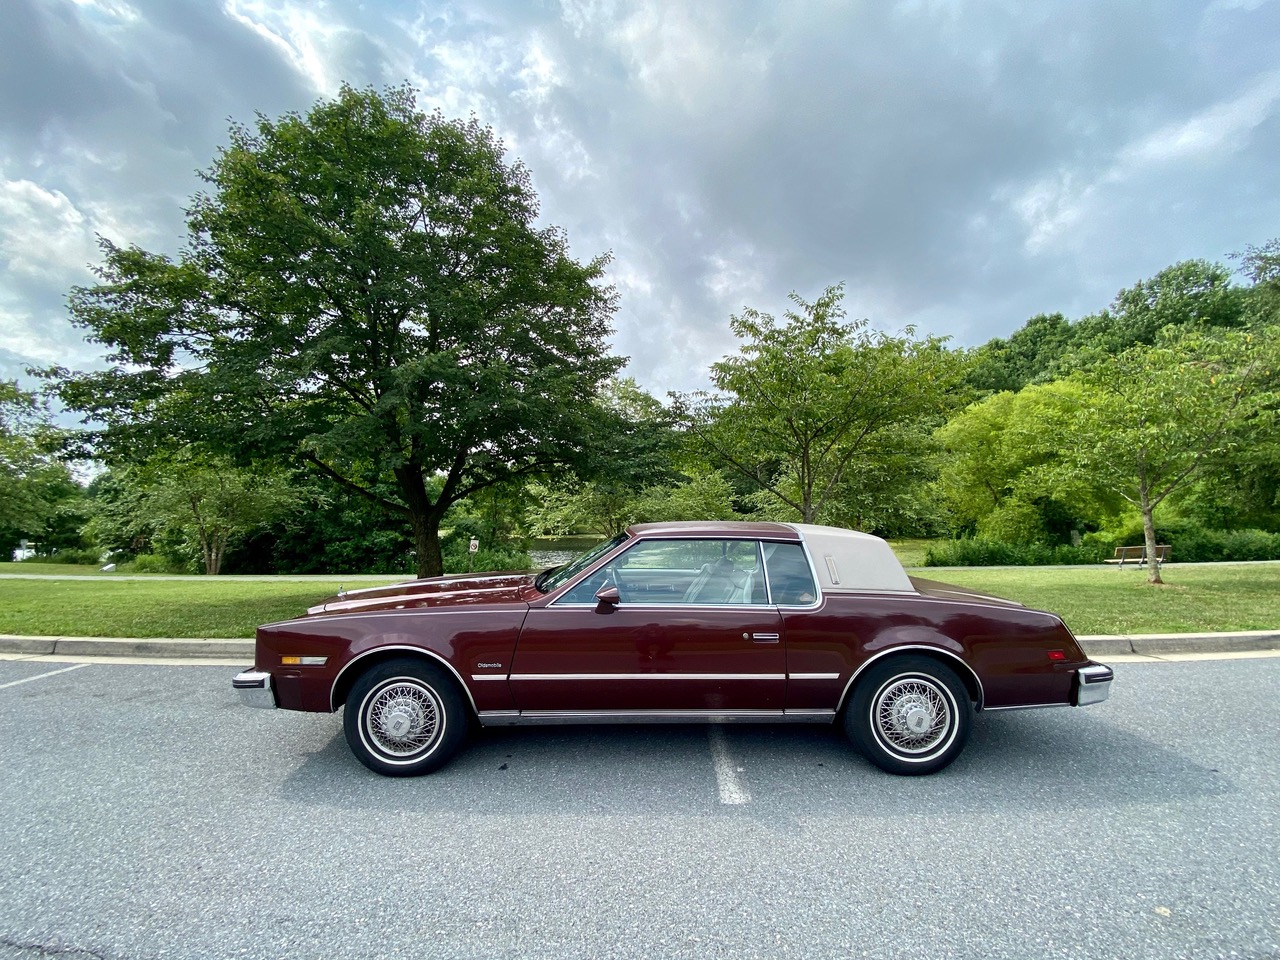 1984 Oldsmobile Toronado profile